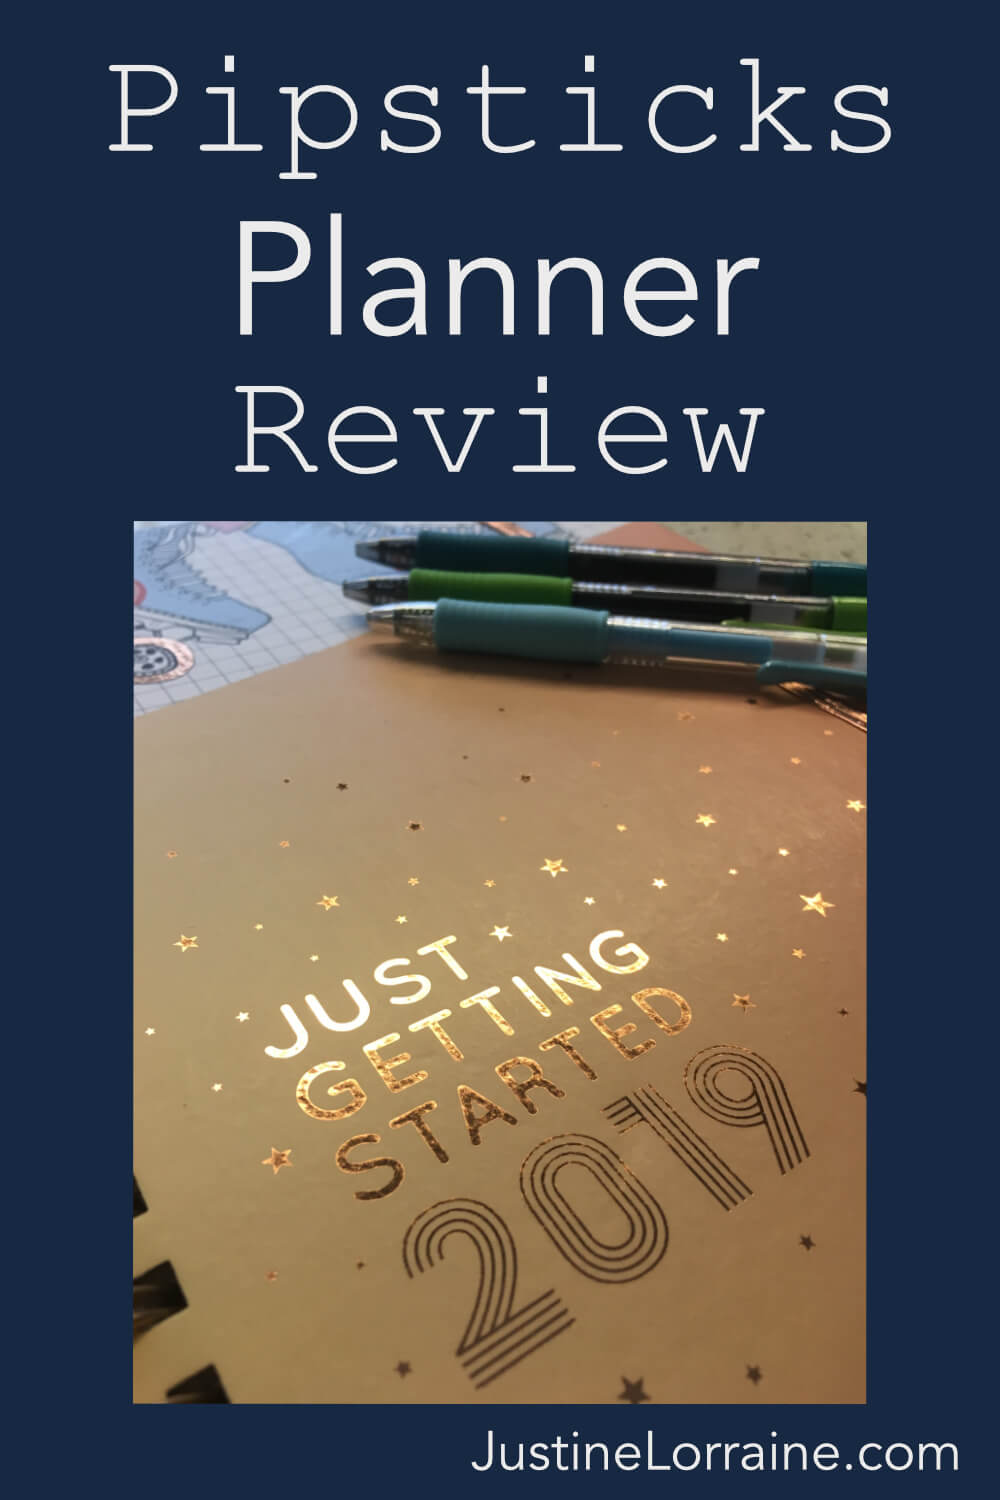 One of my favorite parts of back to school shopping is picking out my newest planner. This year I tried a Pipsticks brand planner. She is pretty dang nice.